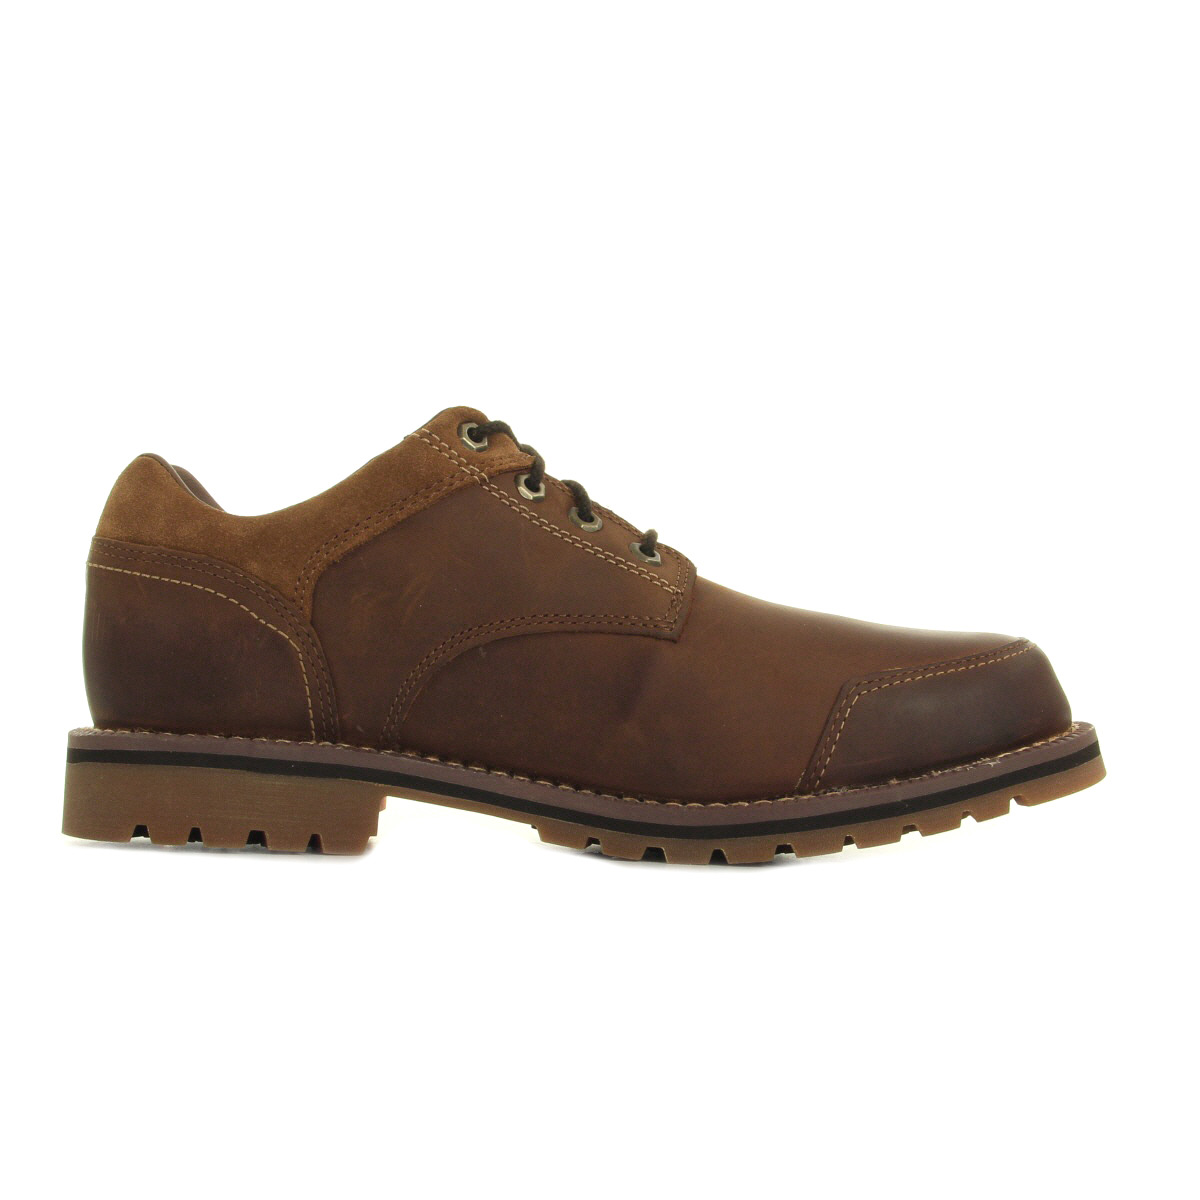 Timberland Larchmont Oxford Full Grain and Suede CA13H2